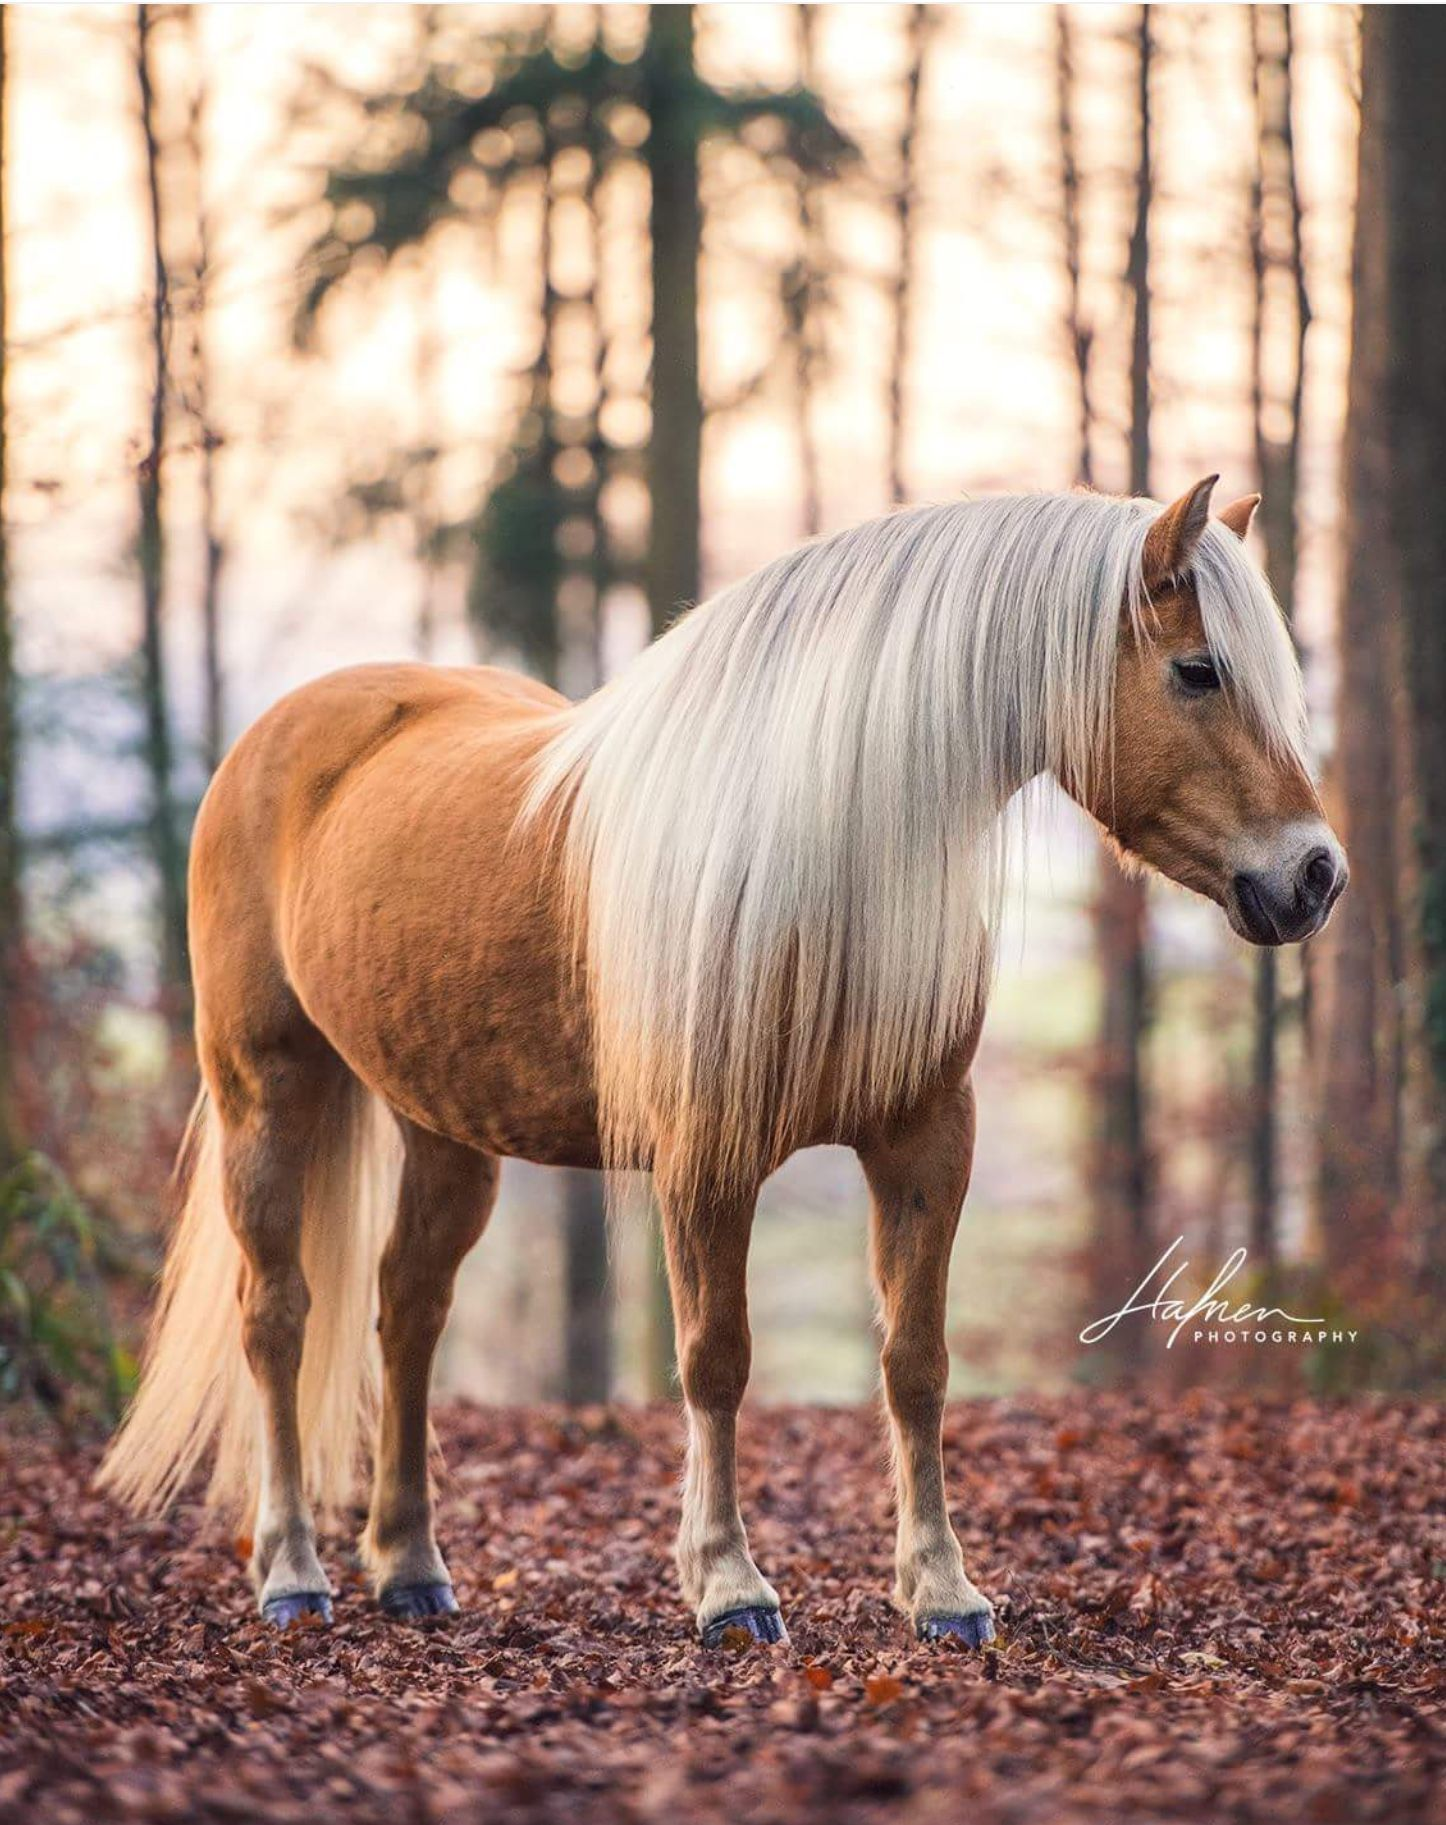 Hafner Photography Hafner Photography Check More At Https Tiere Casebtc Com Hafner Photography In 2020 Haflinger Pferde Pferderassen Schonste Pferde